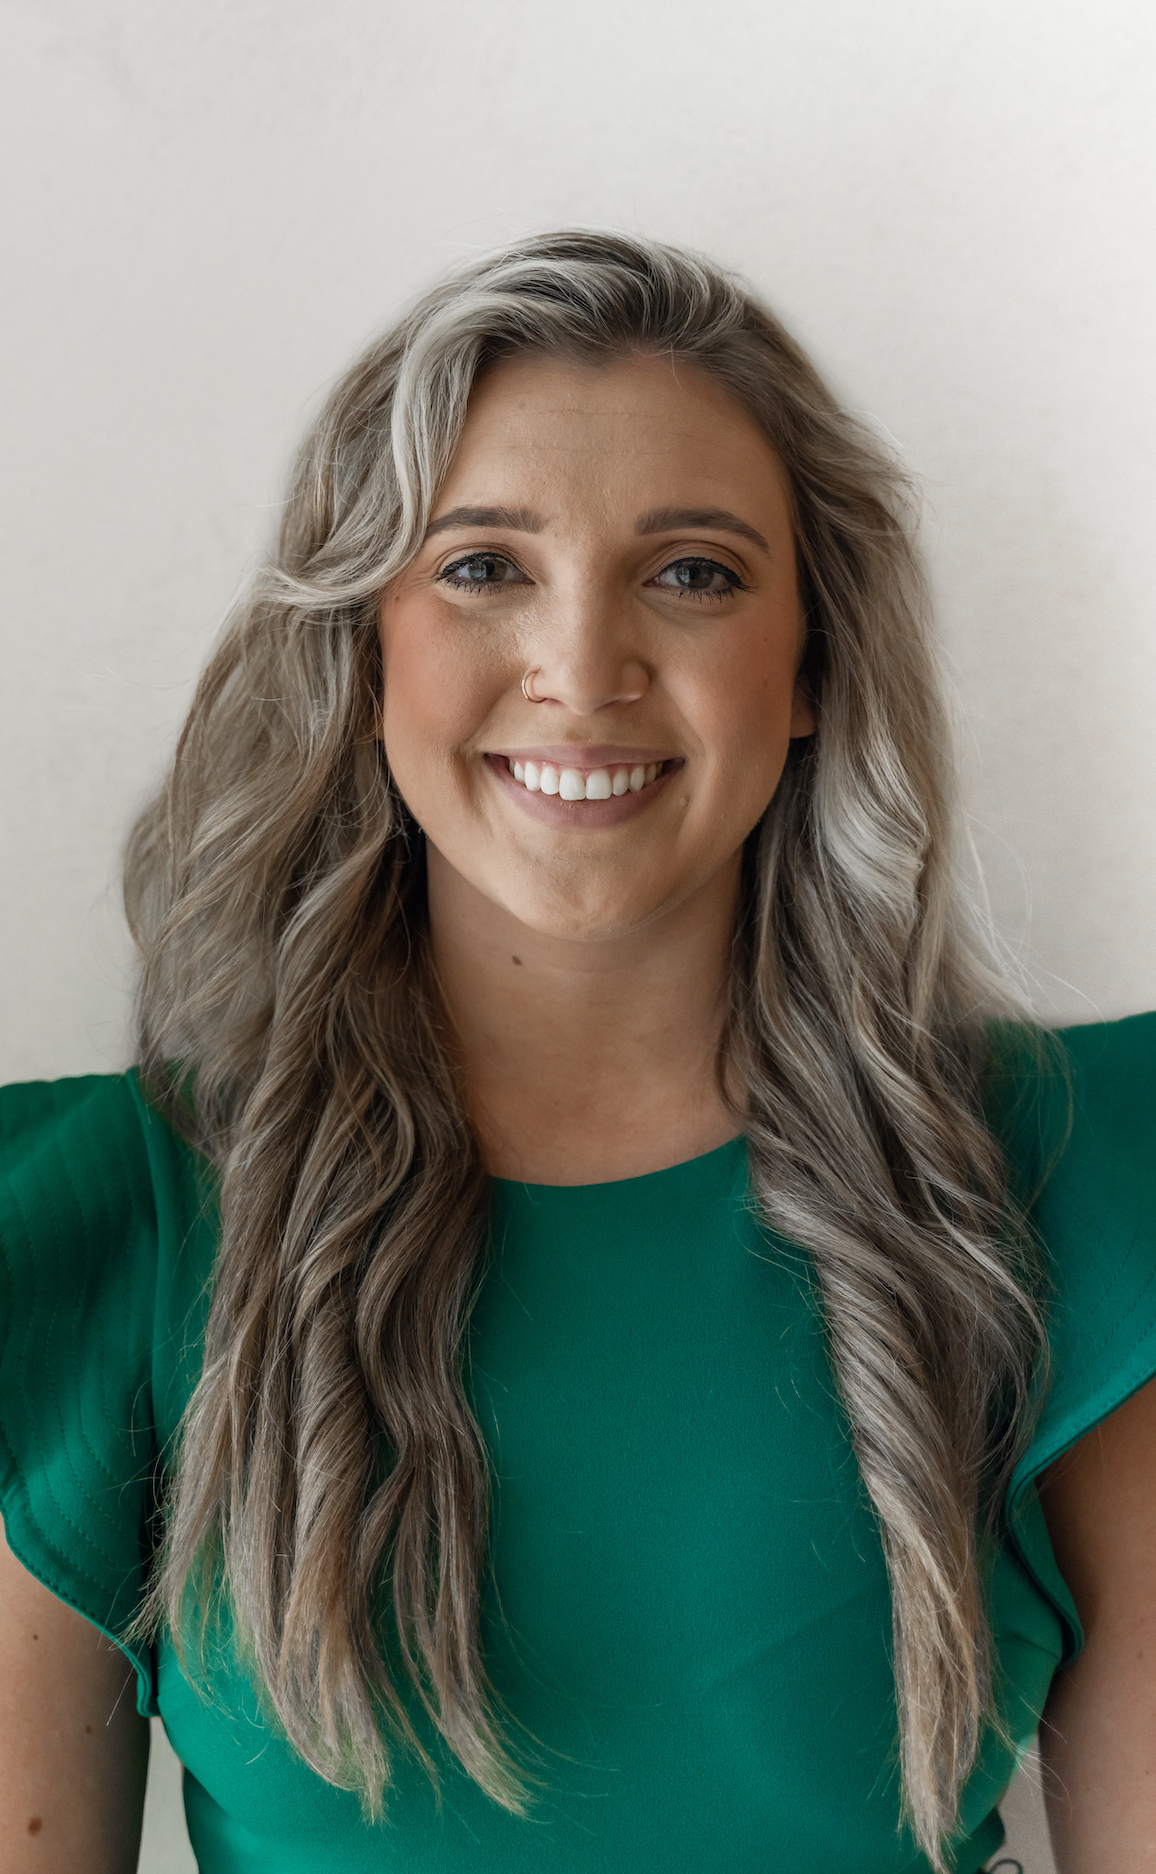 Brooke Kingery Working at Whitlock Accounting Services in Alcoa or pigeon forge Tennessee